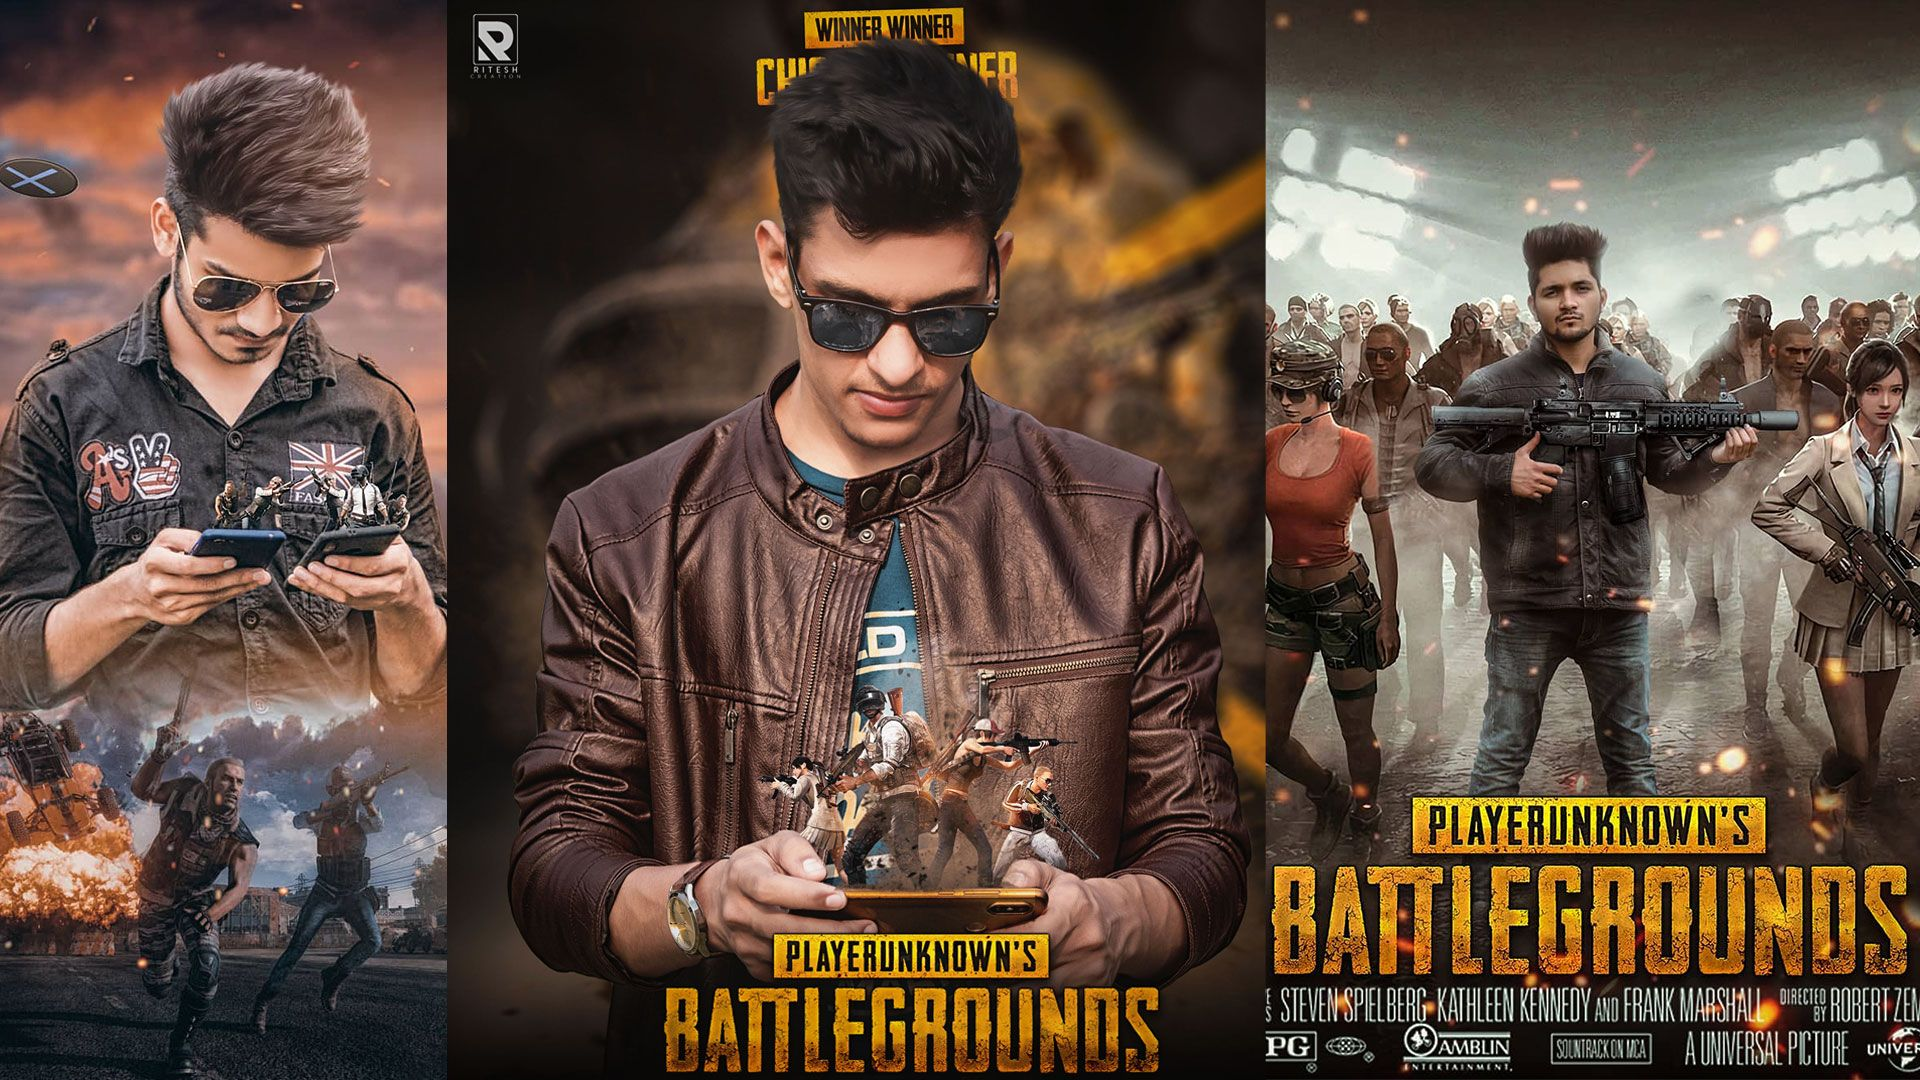 Pubg Mobile Editing Background Download For Picsart And Photoshop In 2020 Editing Background Photo Editing Picsart